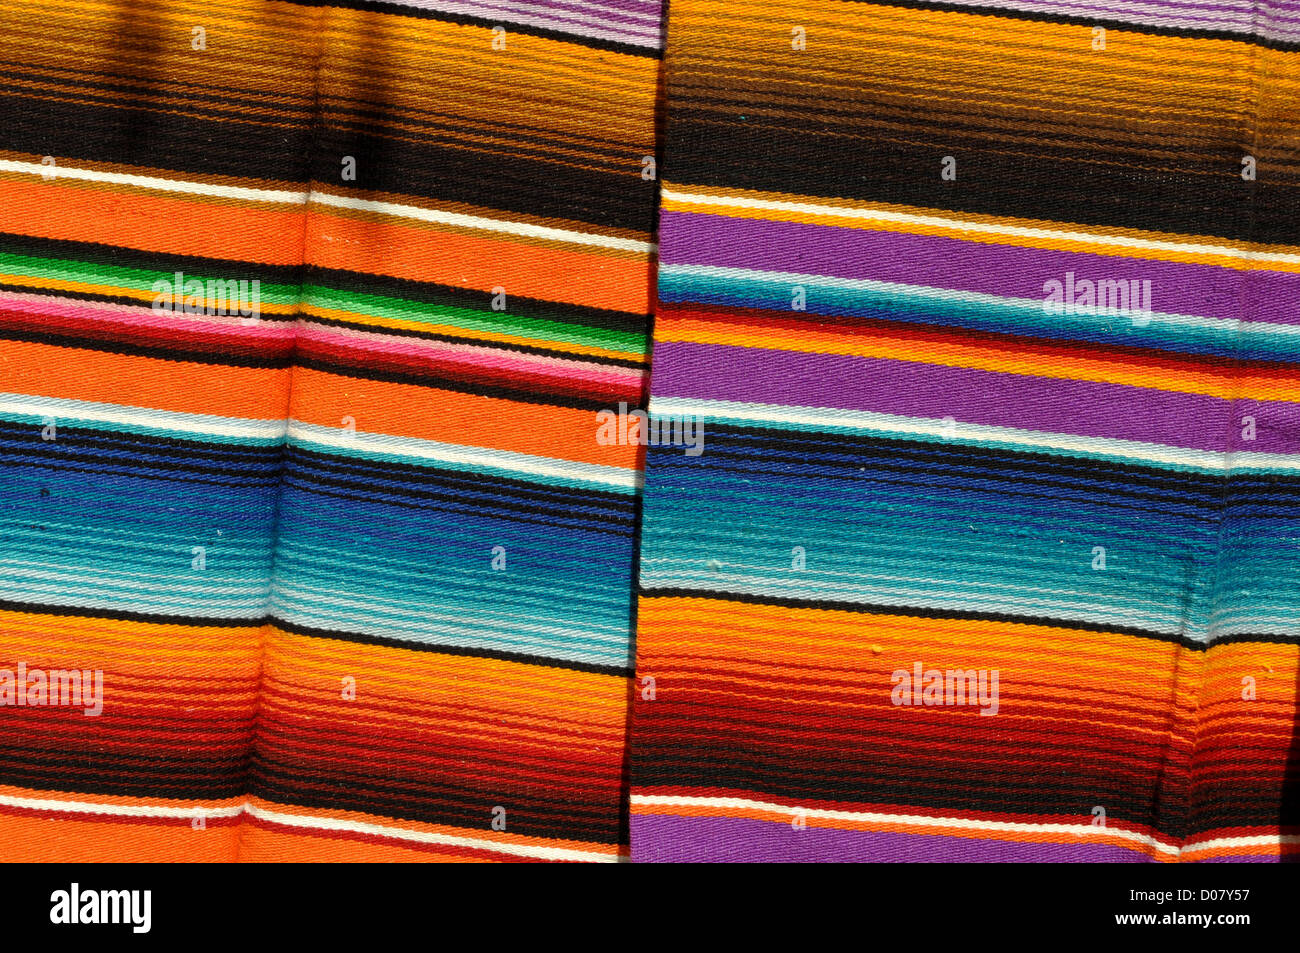 mayan mexican colorful blankets stock photo royalty free image  - mayan mexican colorful blankets